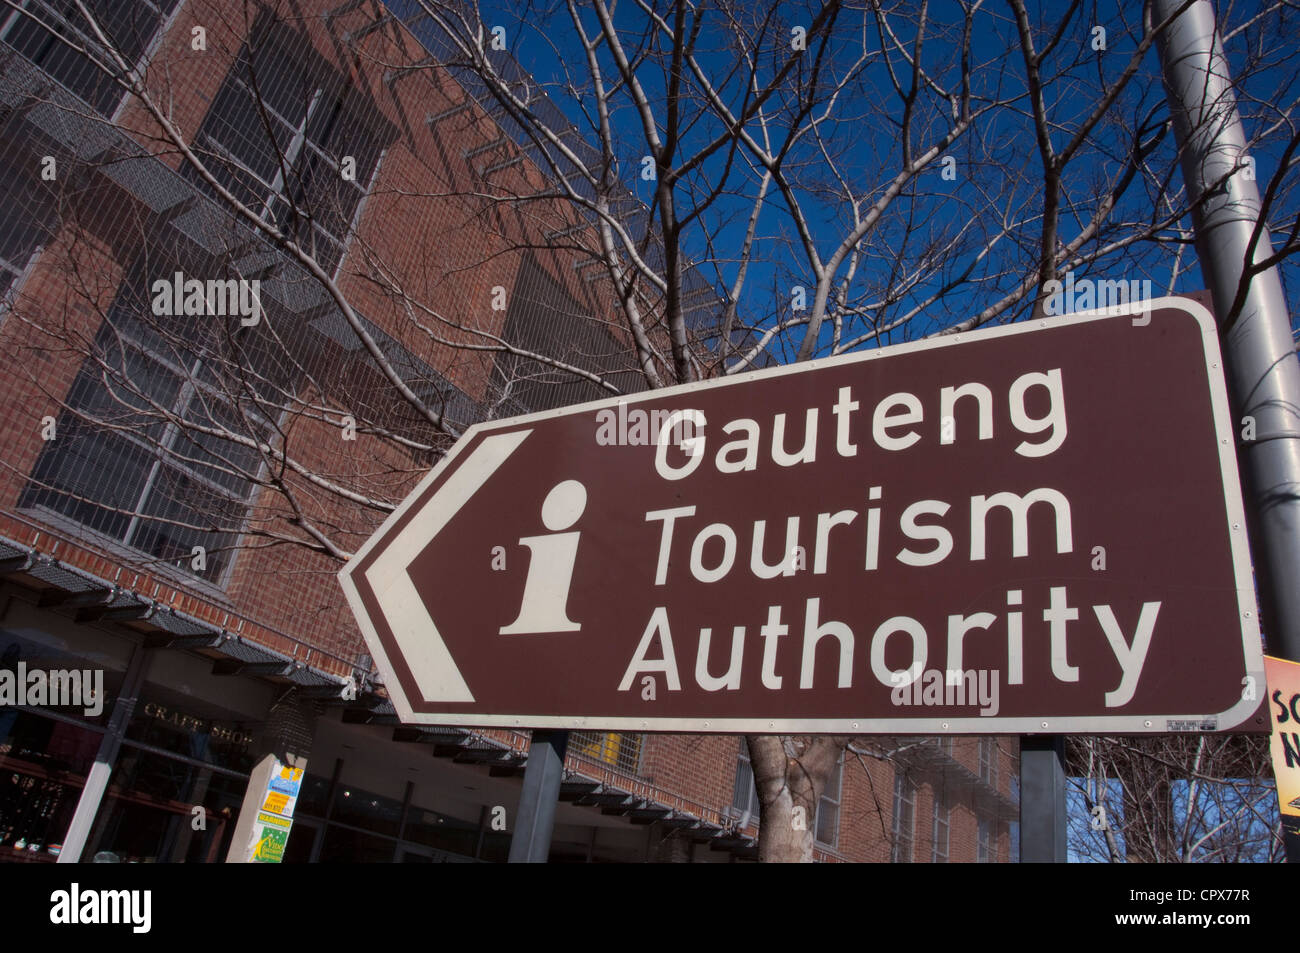 Closeup of a city street sign saying Gauteng Tourism Authority Stock Photo